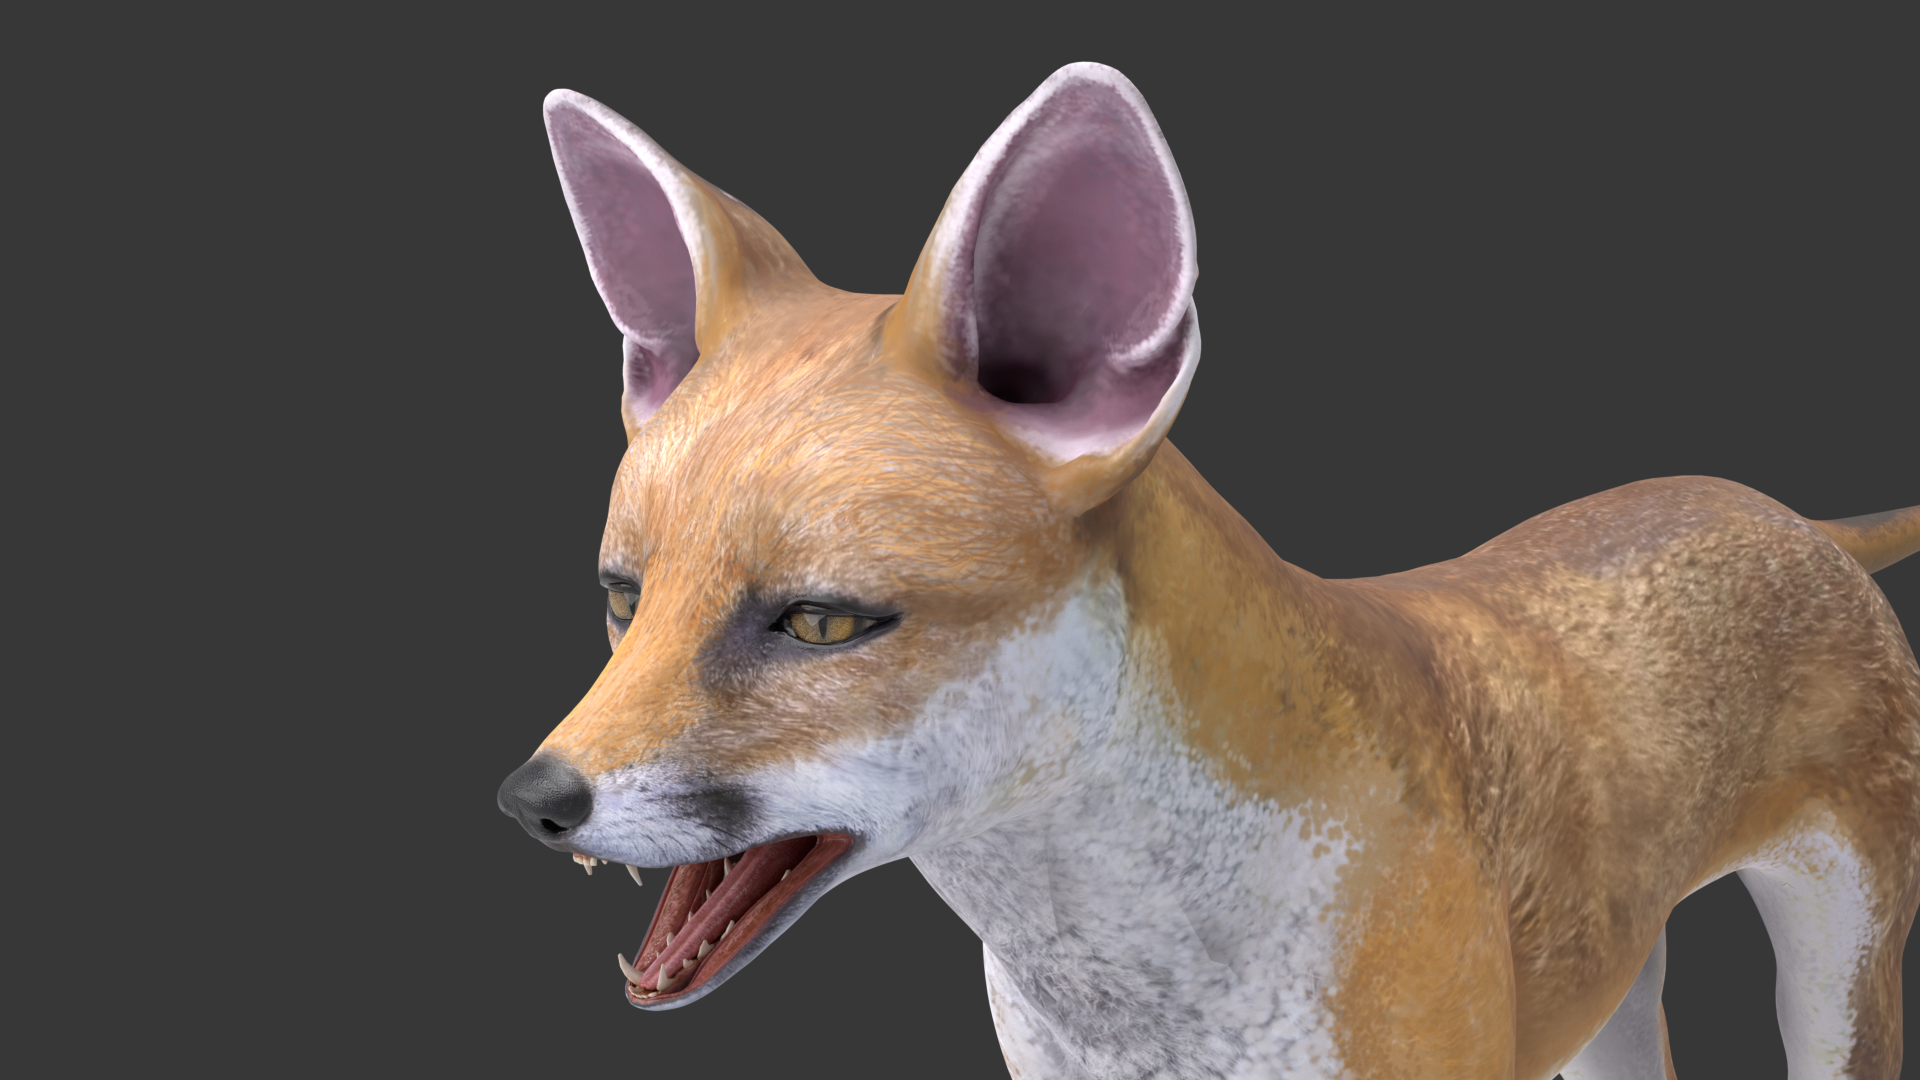 Red Fox with fur and Rig preview image 4